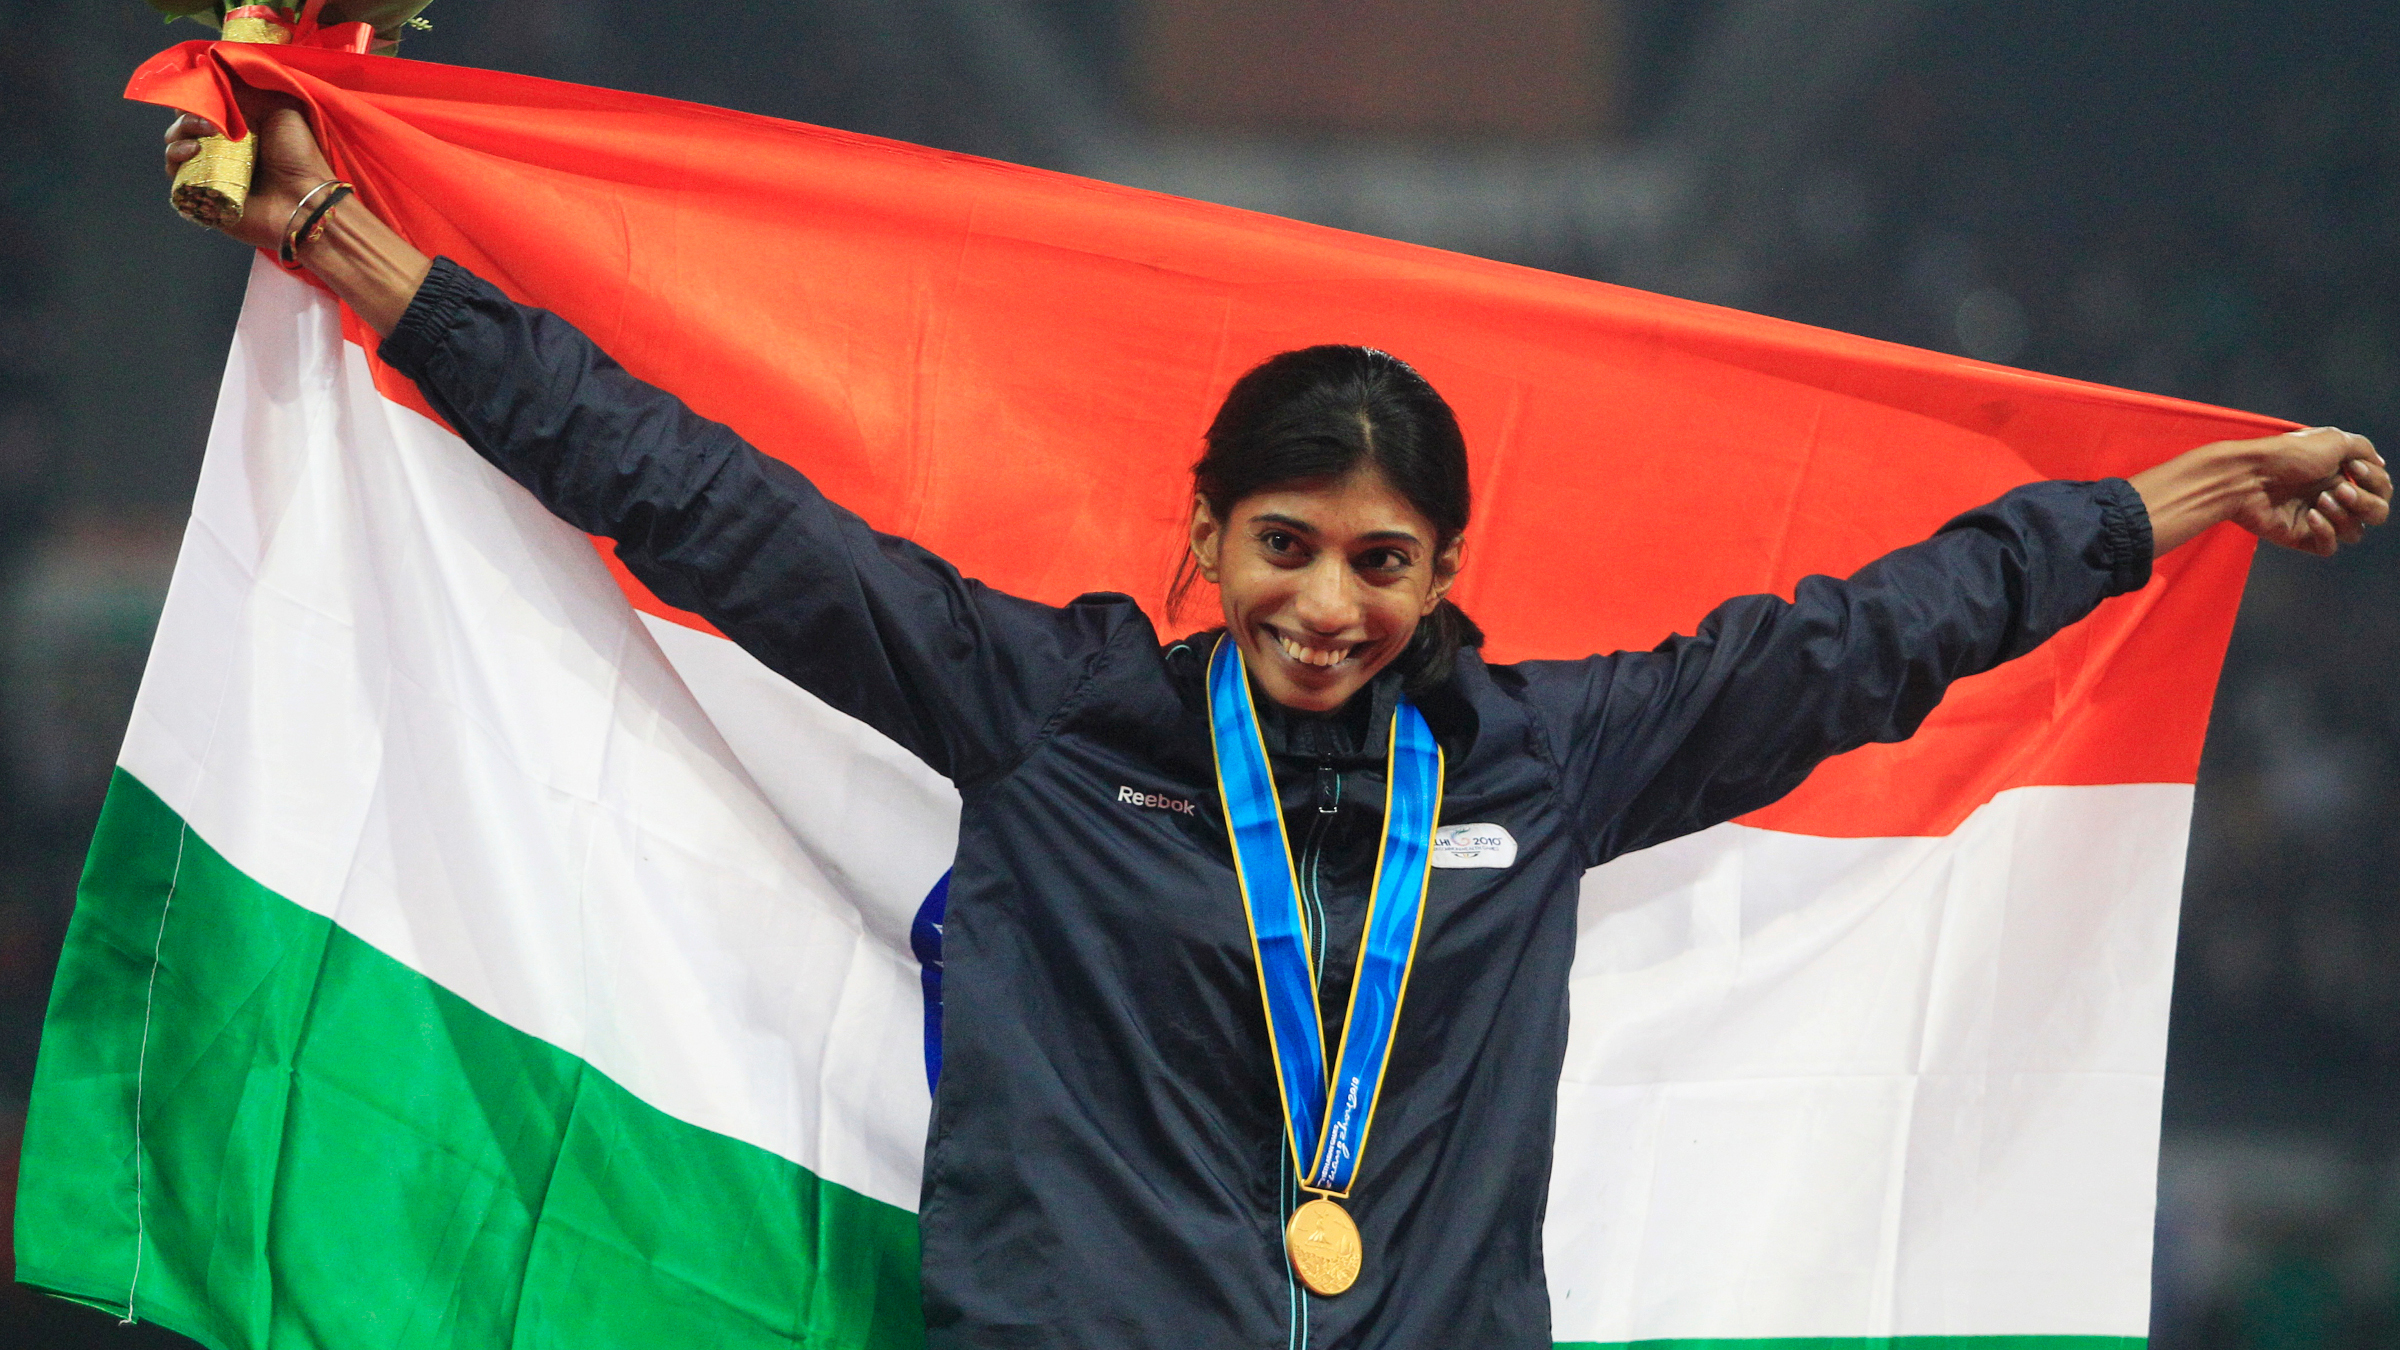 India's Ashwini Chidananda Akkunji celebrates with her gold medal after winning the women's 400m hurdles event at the 16th Asian Games in Guangzhou, Guangdong province, November 25, 2010.